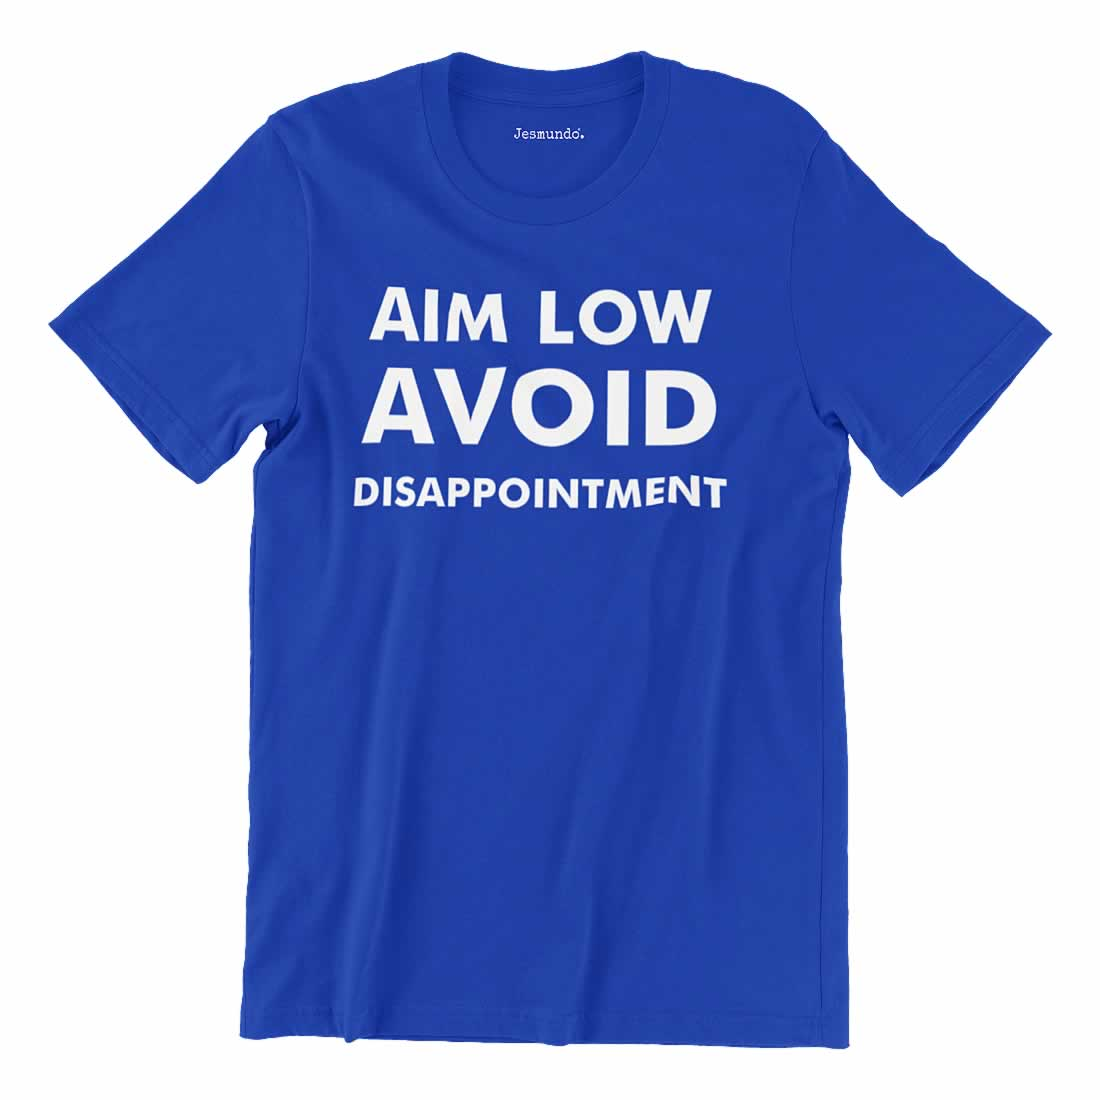 Aim Low Avoid Disappointment T-Shirt